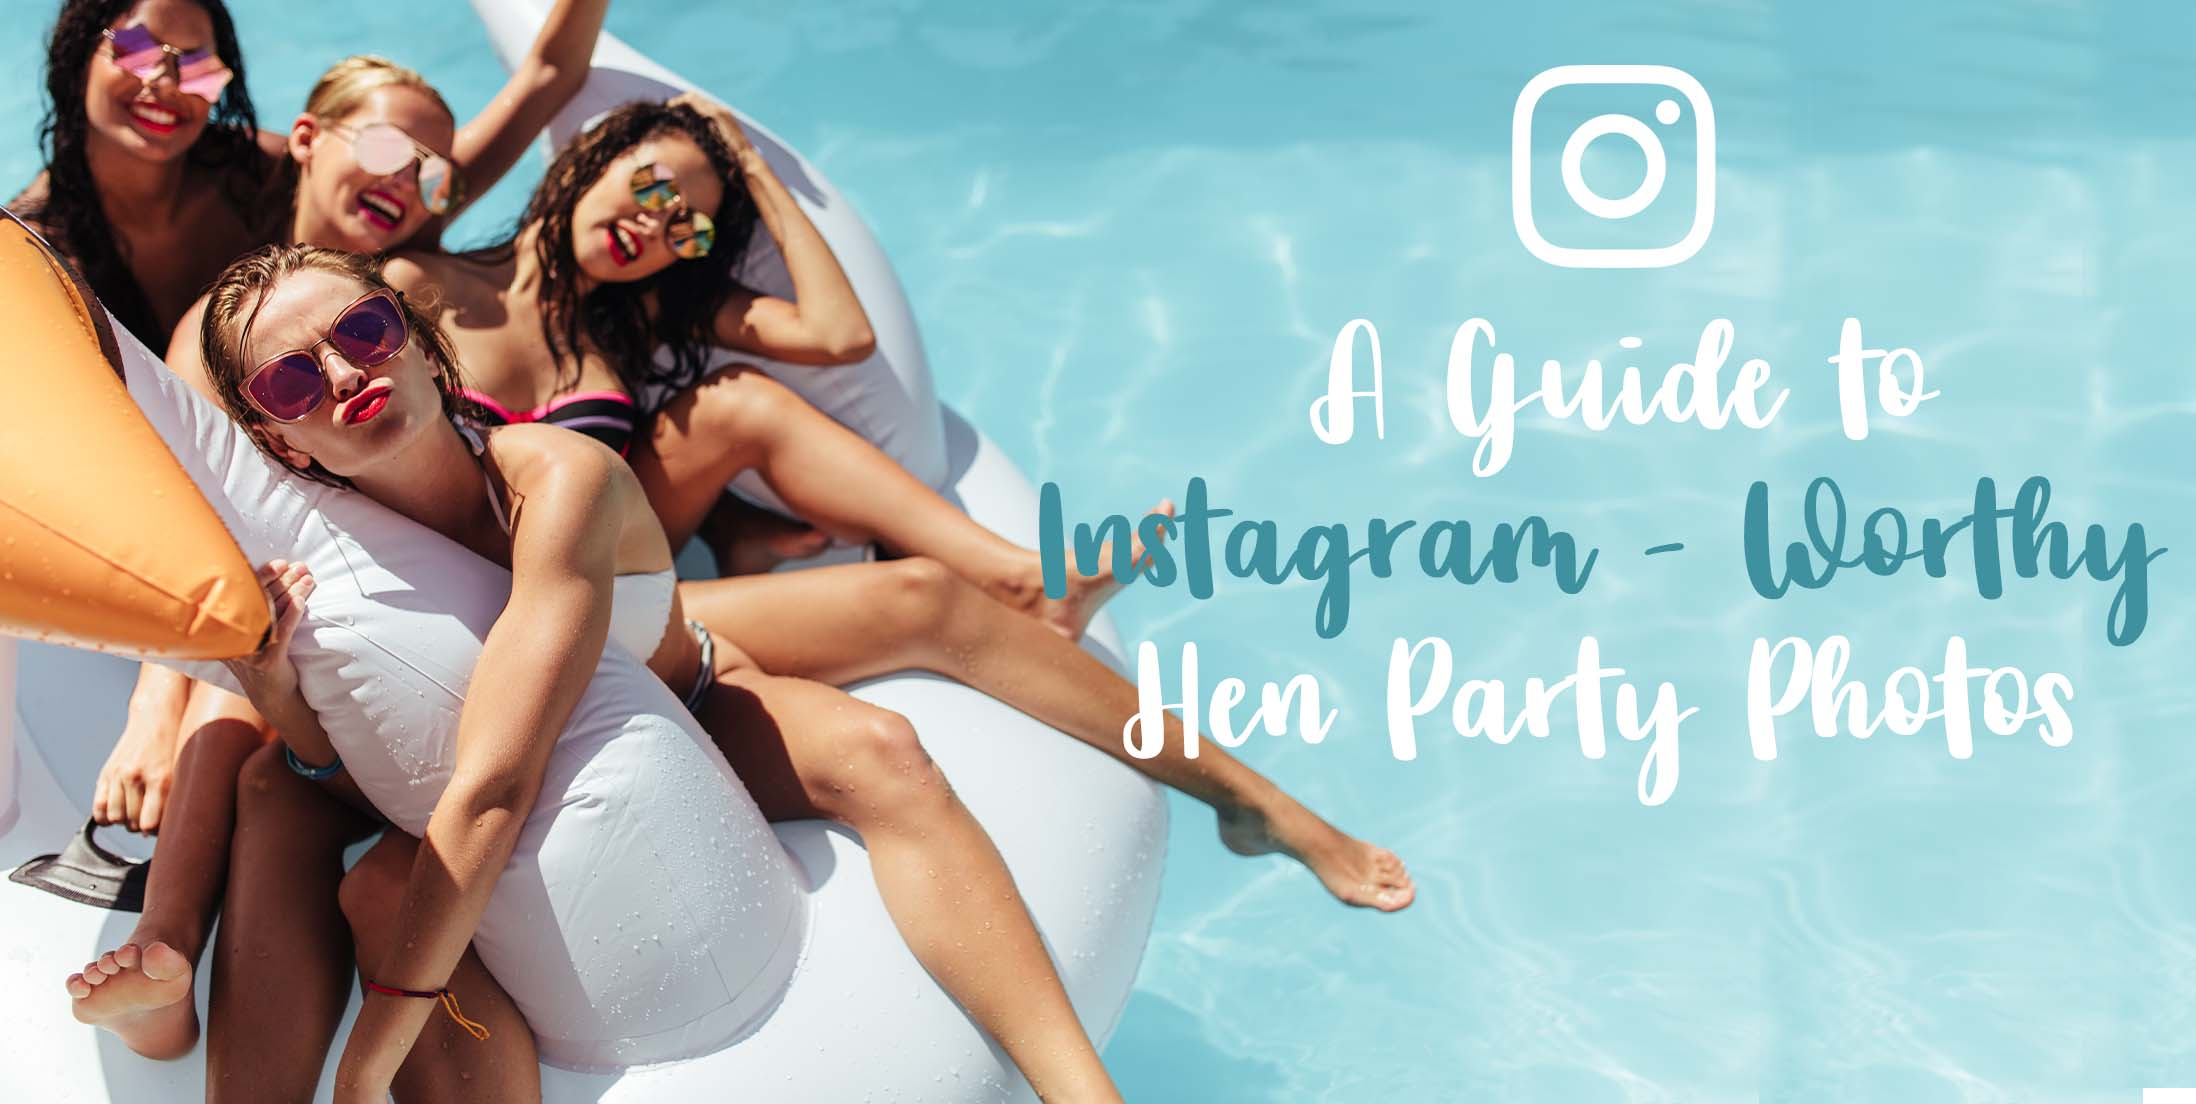 Guide to Instagram-worthy Hen Party Photos